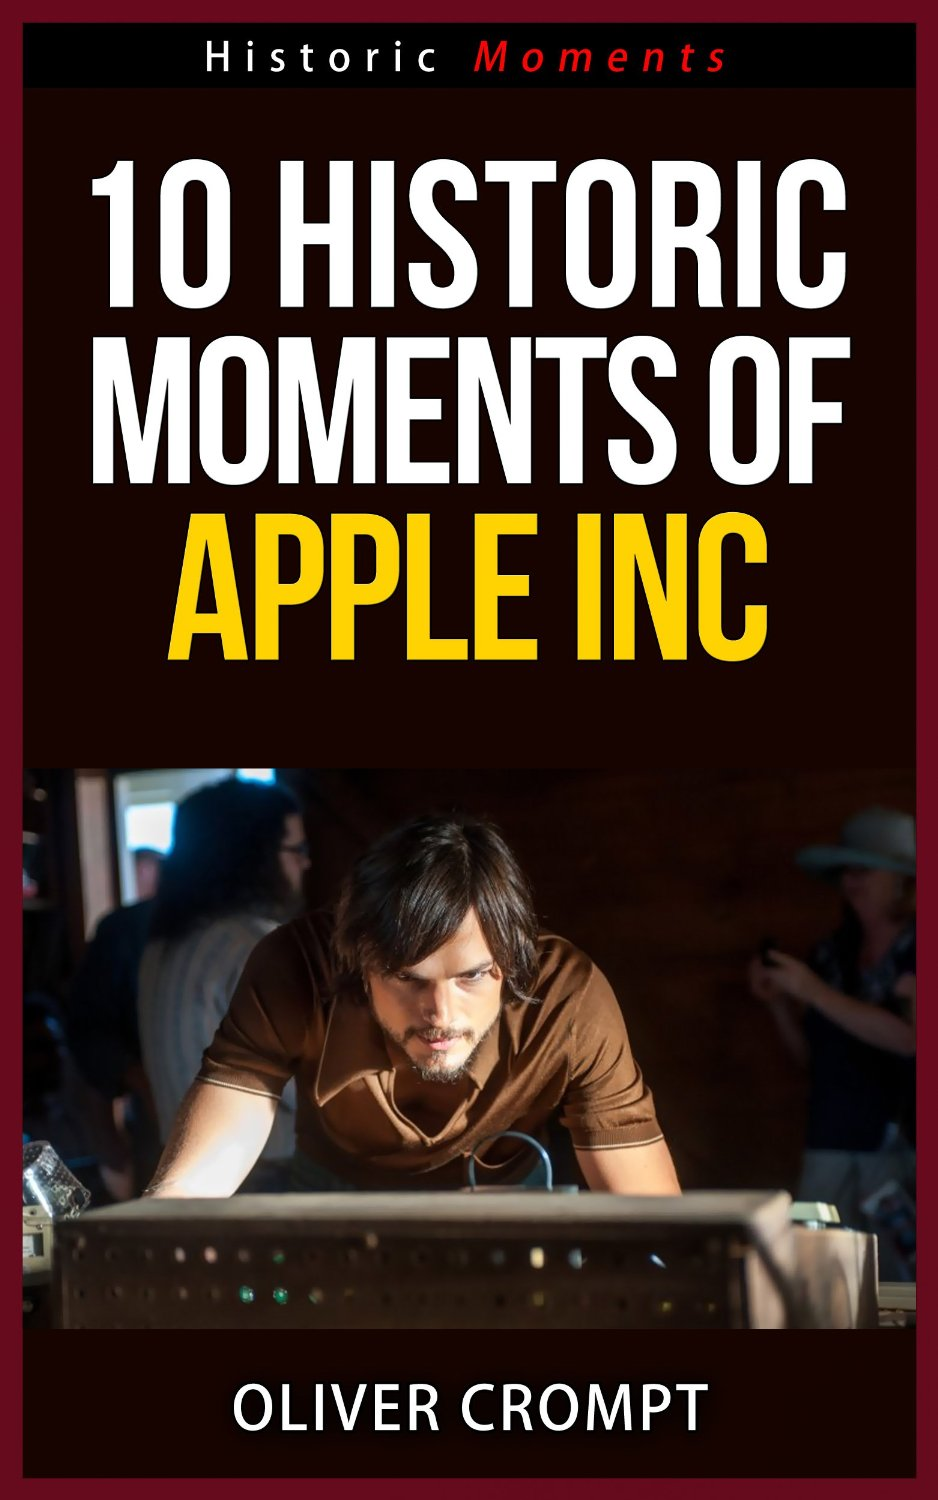 10 Historic Moments Of Apple Inc - Historic Moments Series free download